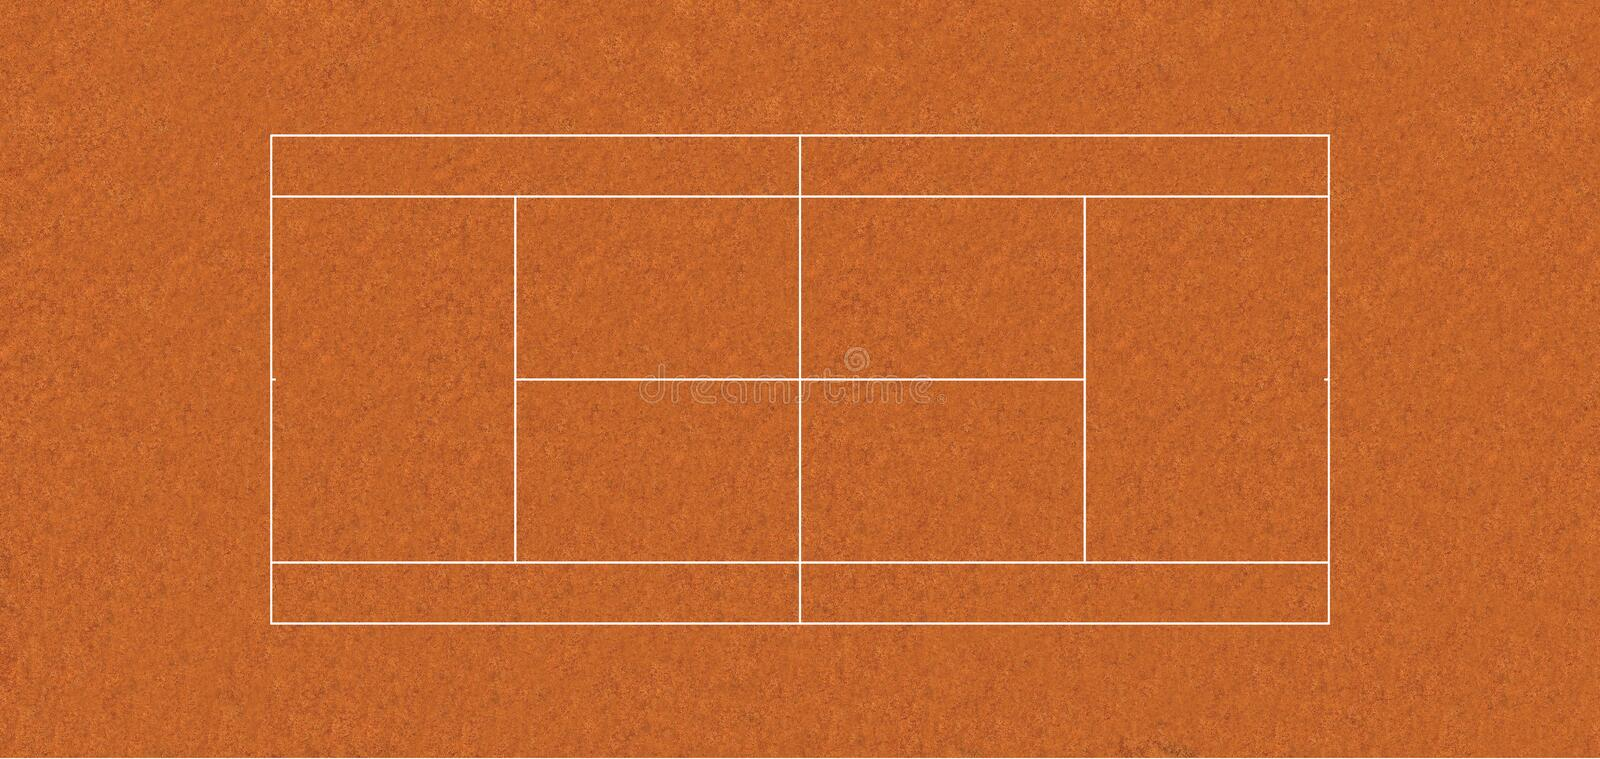 Regulation tennis court CLAY stock illustration